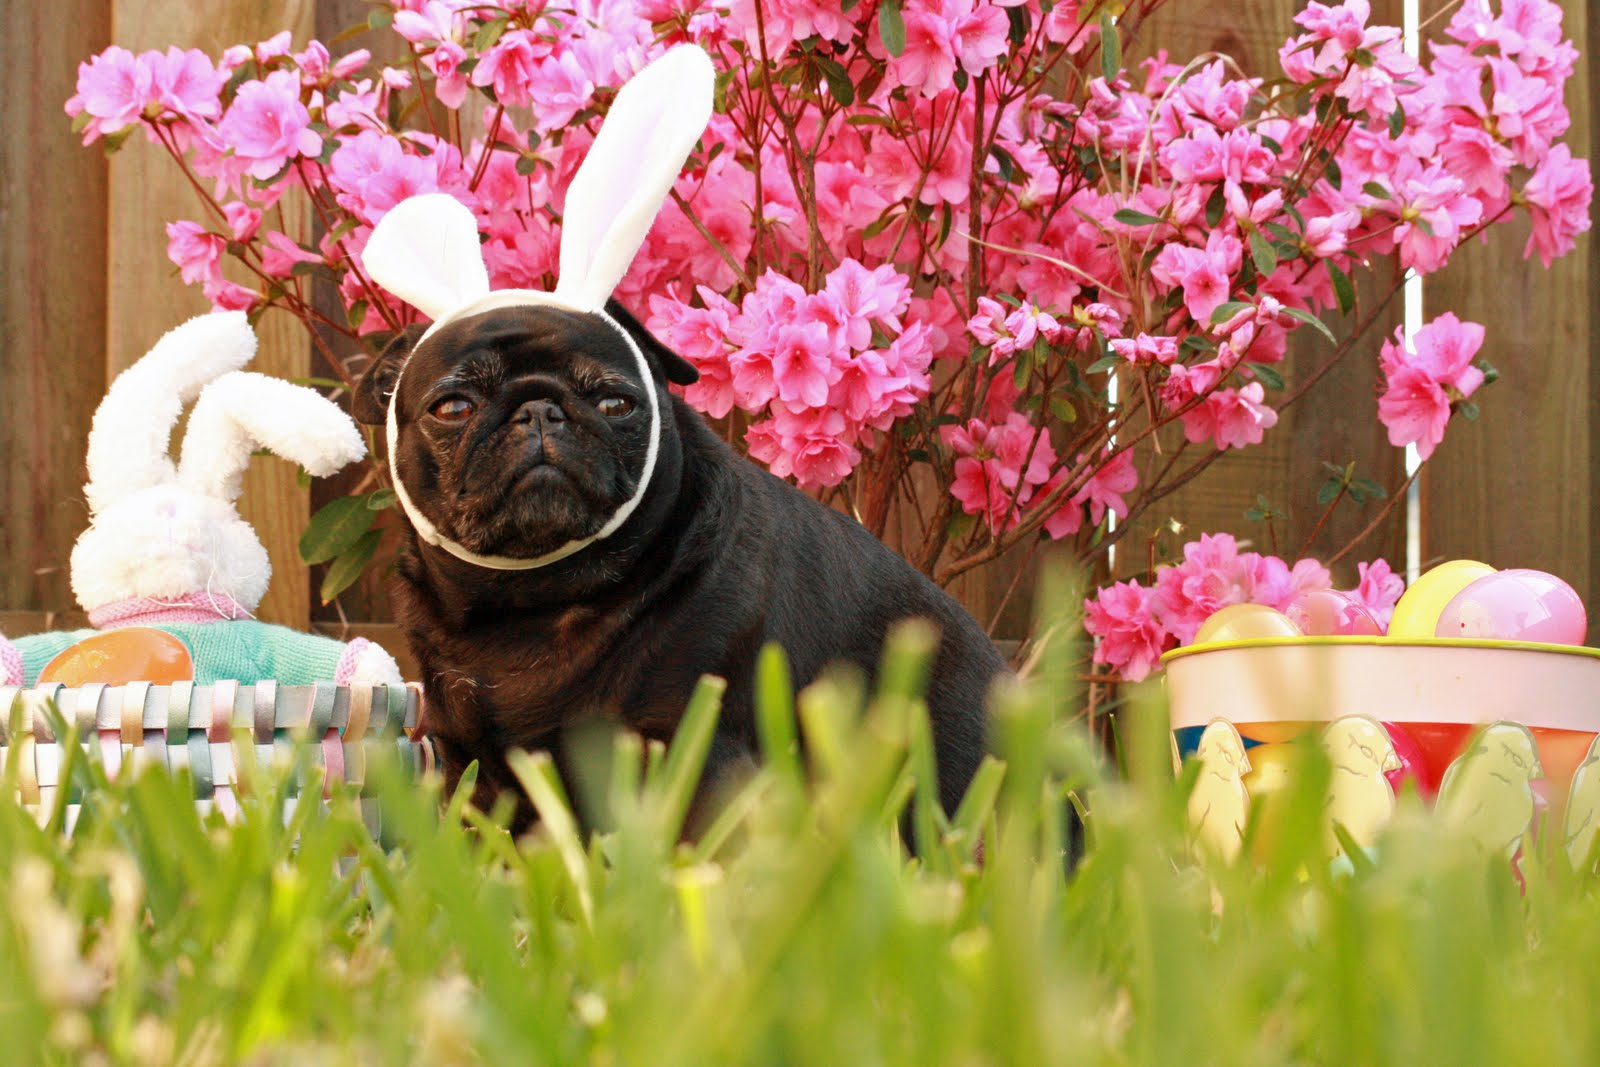 Cute Pug Puppies Wallpapers Easter Pug In The Grass Photo And Wallpaper Beautiful